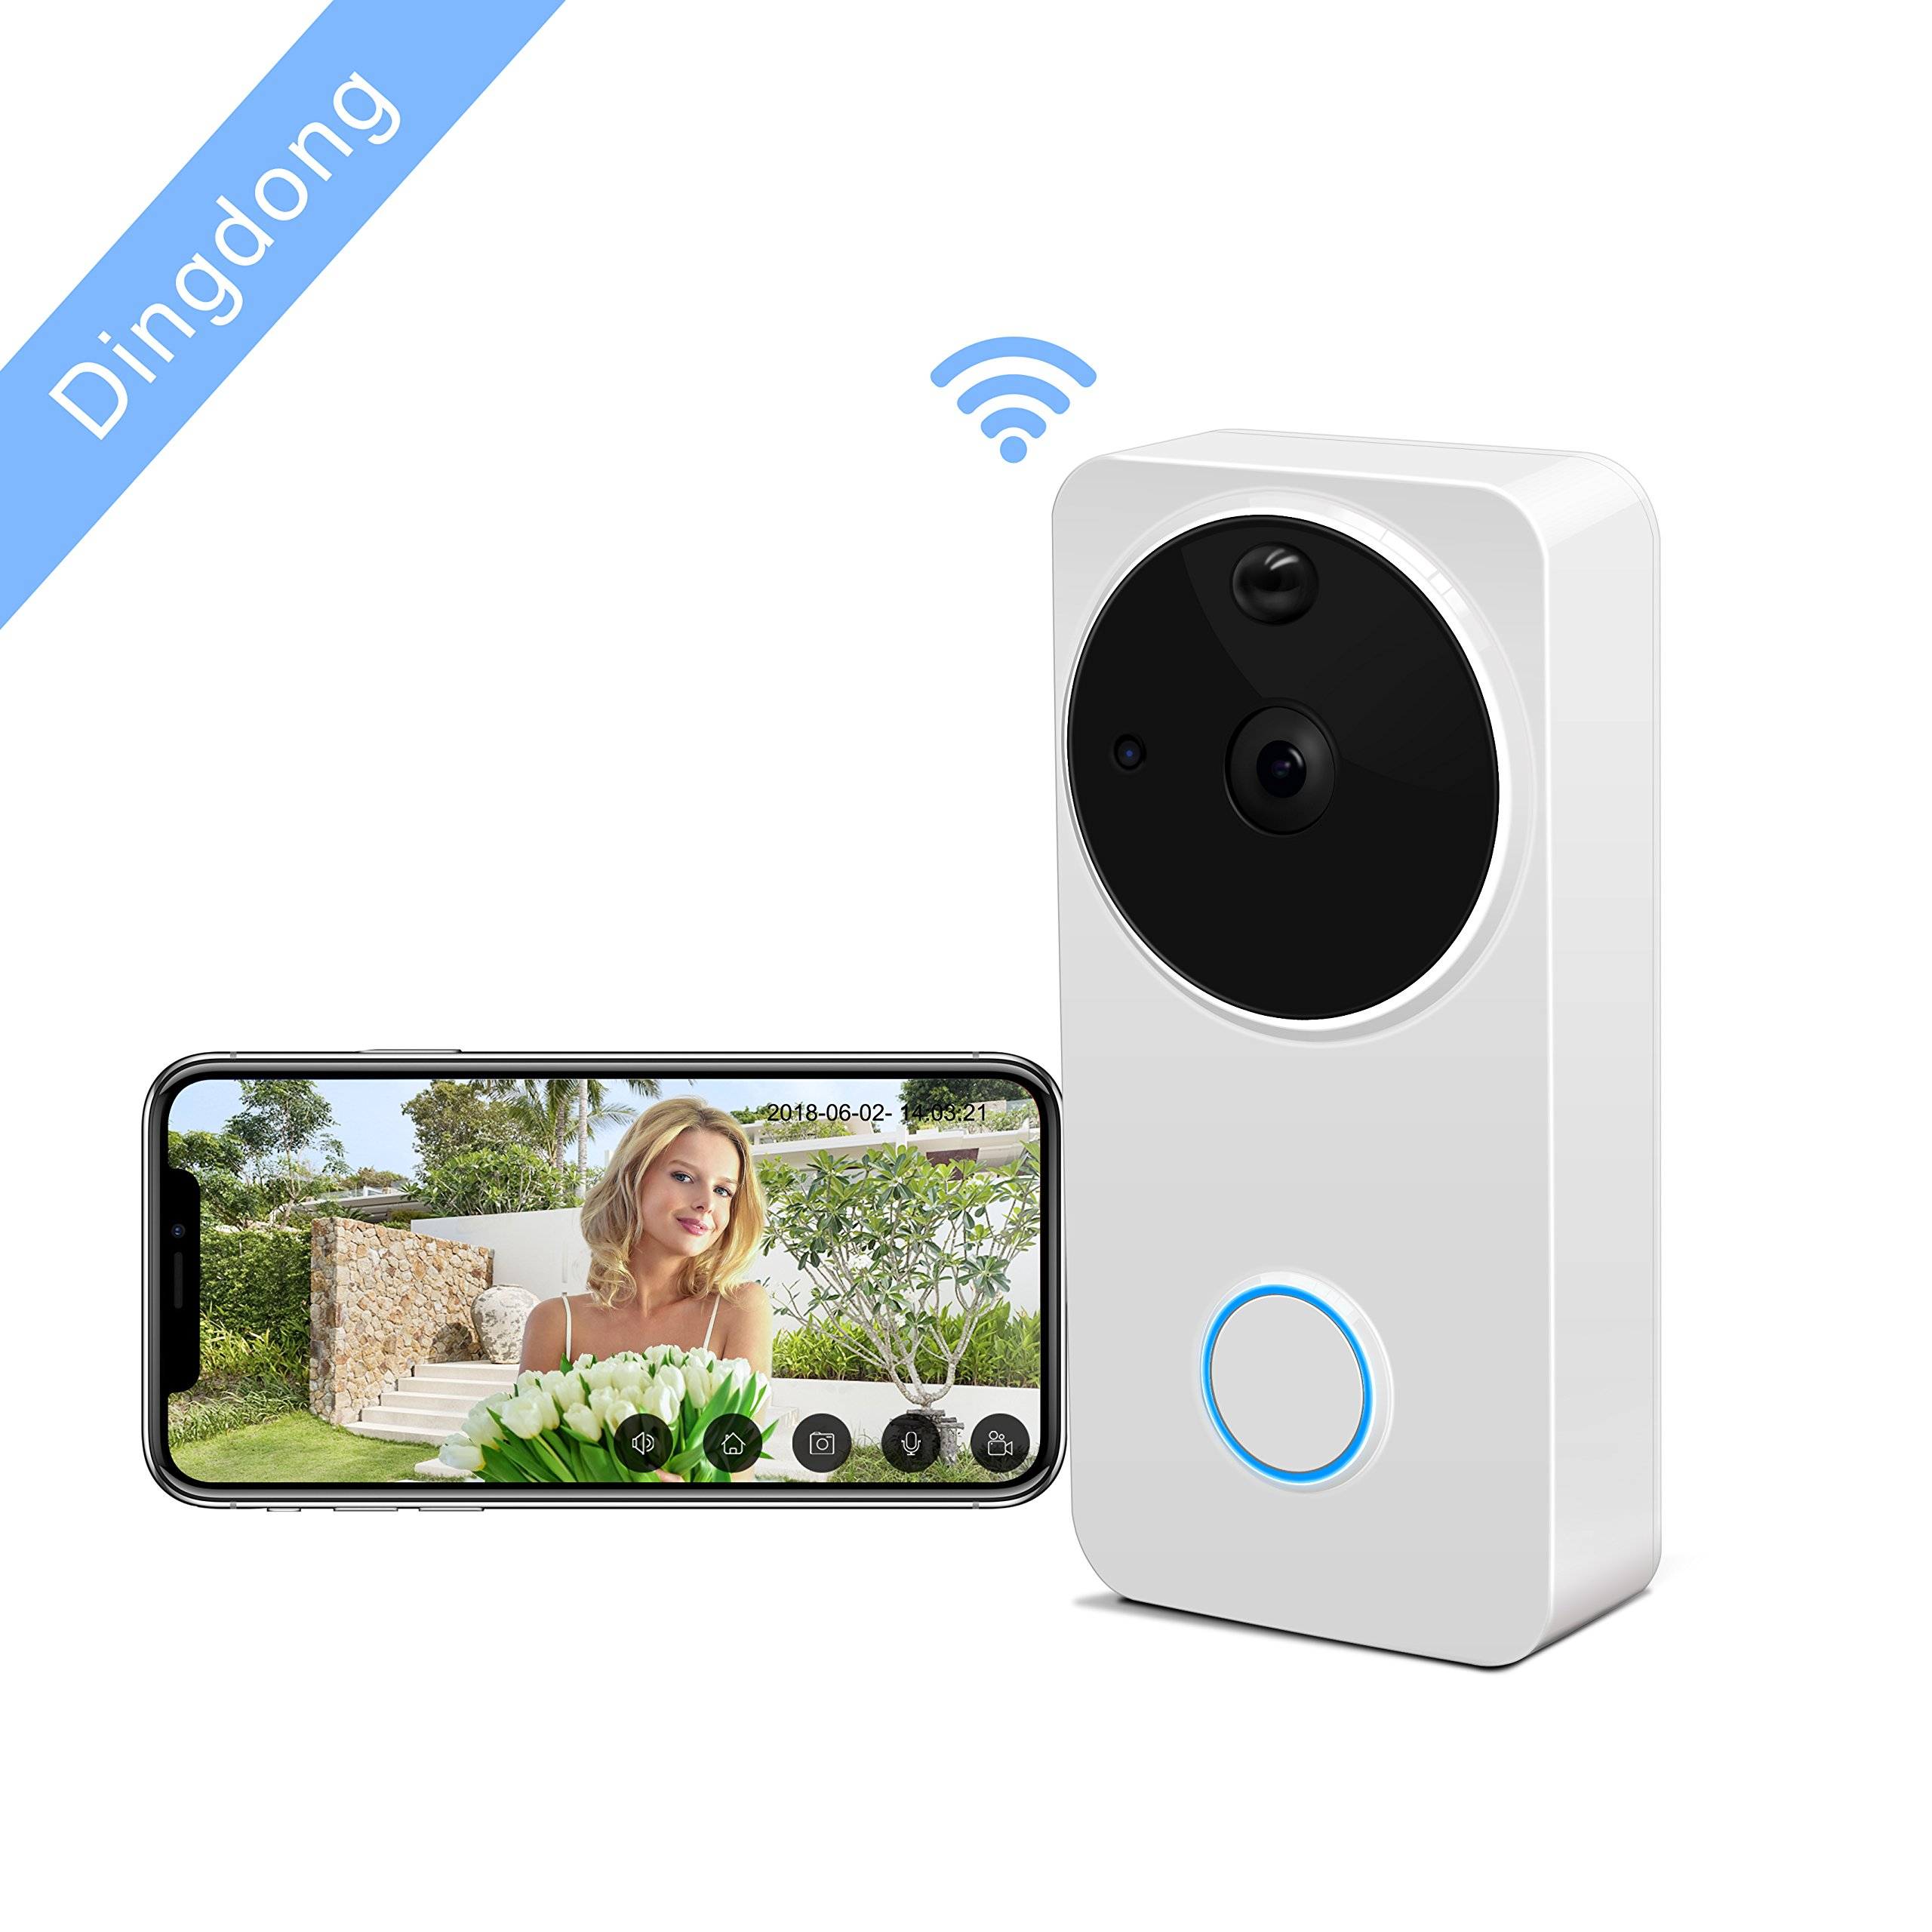 Video Doorbell Wireless - HEIHEI WiFi Smart Door Bell Kit, 720P HD Video, 2-Way Audio, Motion Detection, IR Night Version, Waterproof Home Camera W/2-Battery Built in 16G Card for IOS/Android - White by HEIHEI (Image #1)